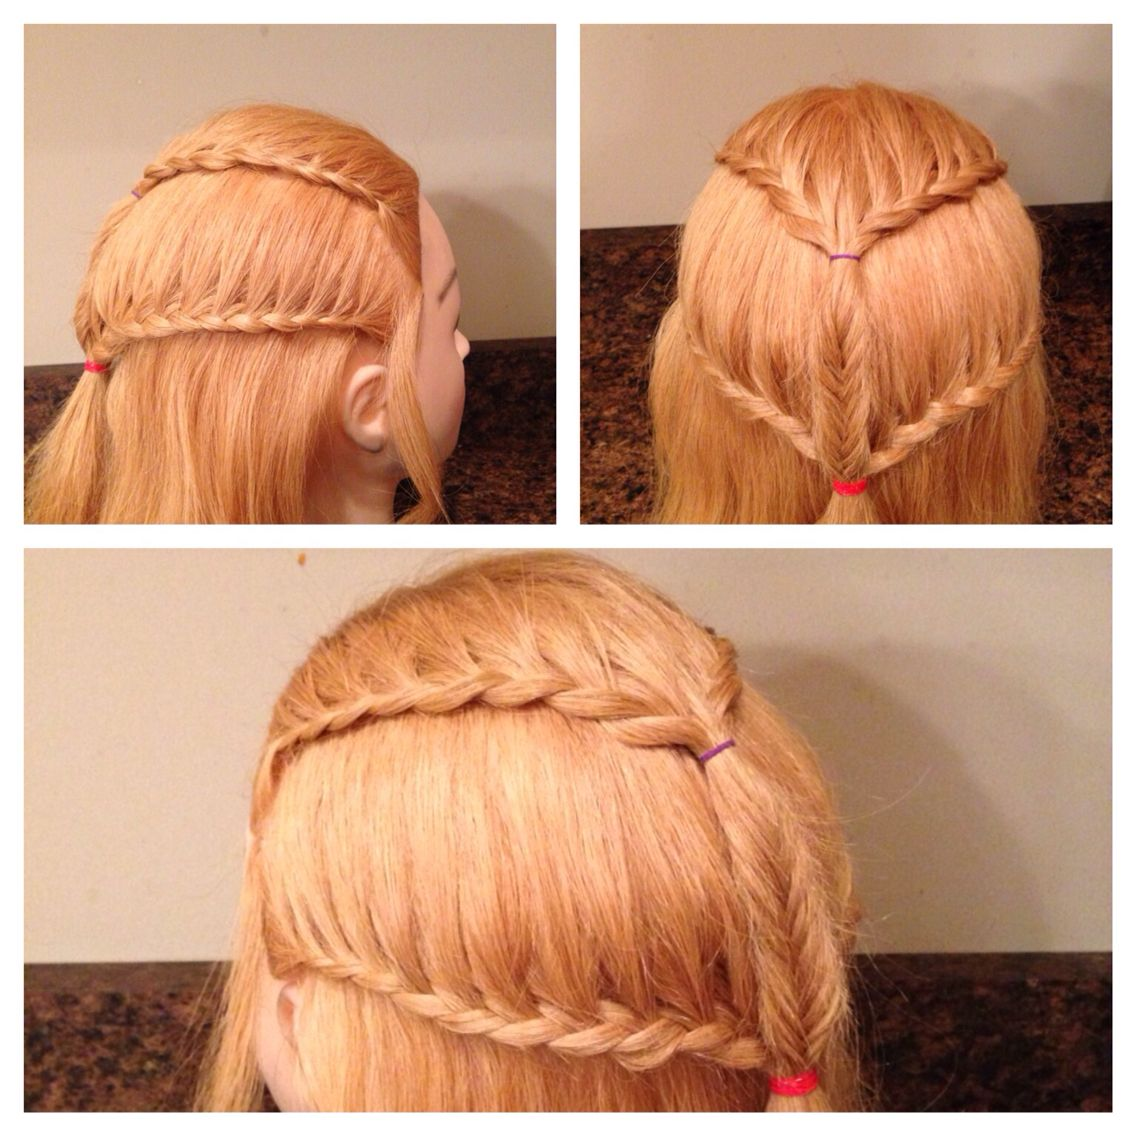 Tauriel Hairstyle Inspired The Hobbit Trilogy By Braids4all On Instagram Coiffure